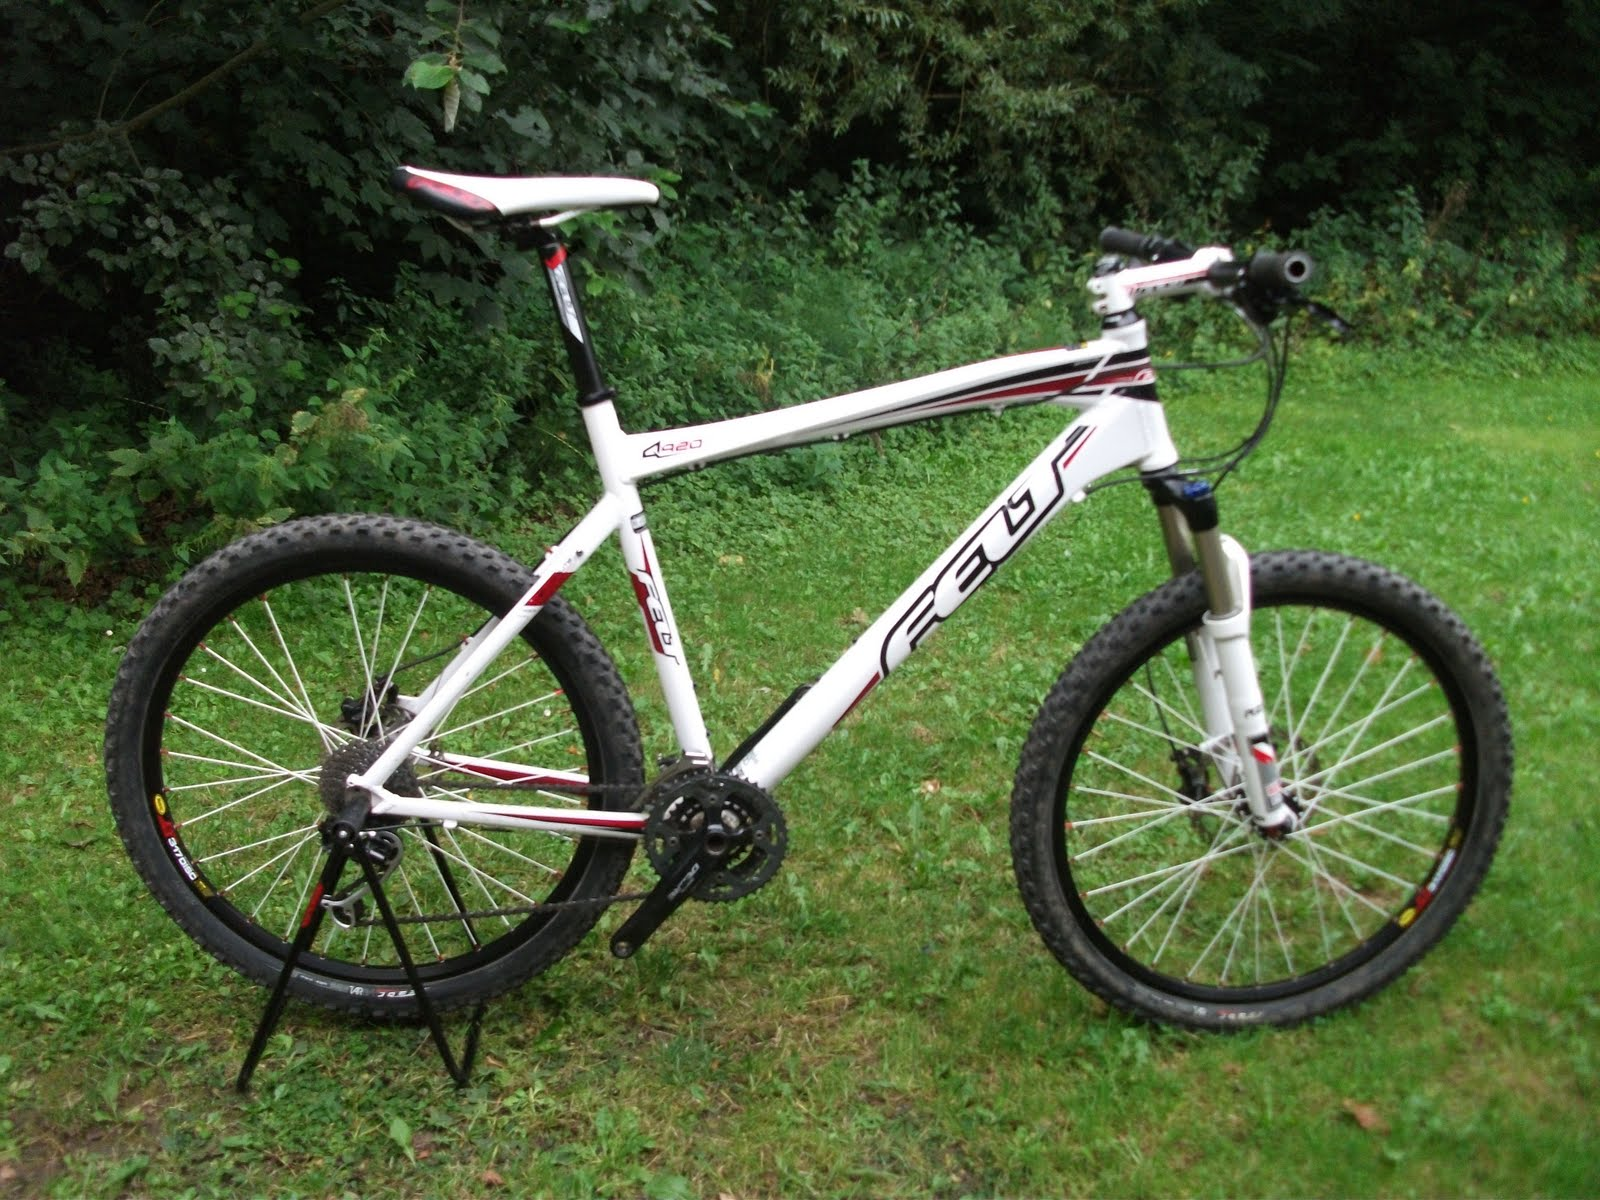 Felt Q920 2010 Mountain Bike Large For Sale Seanthecyclist